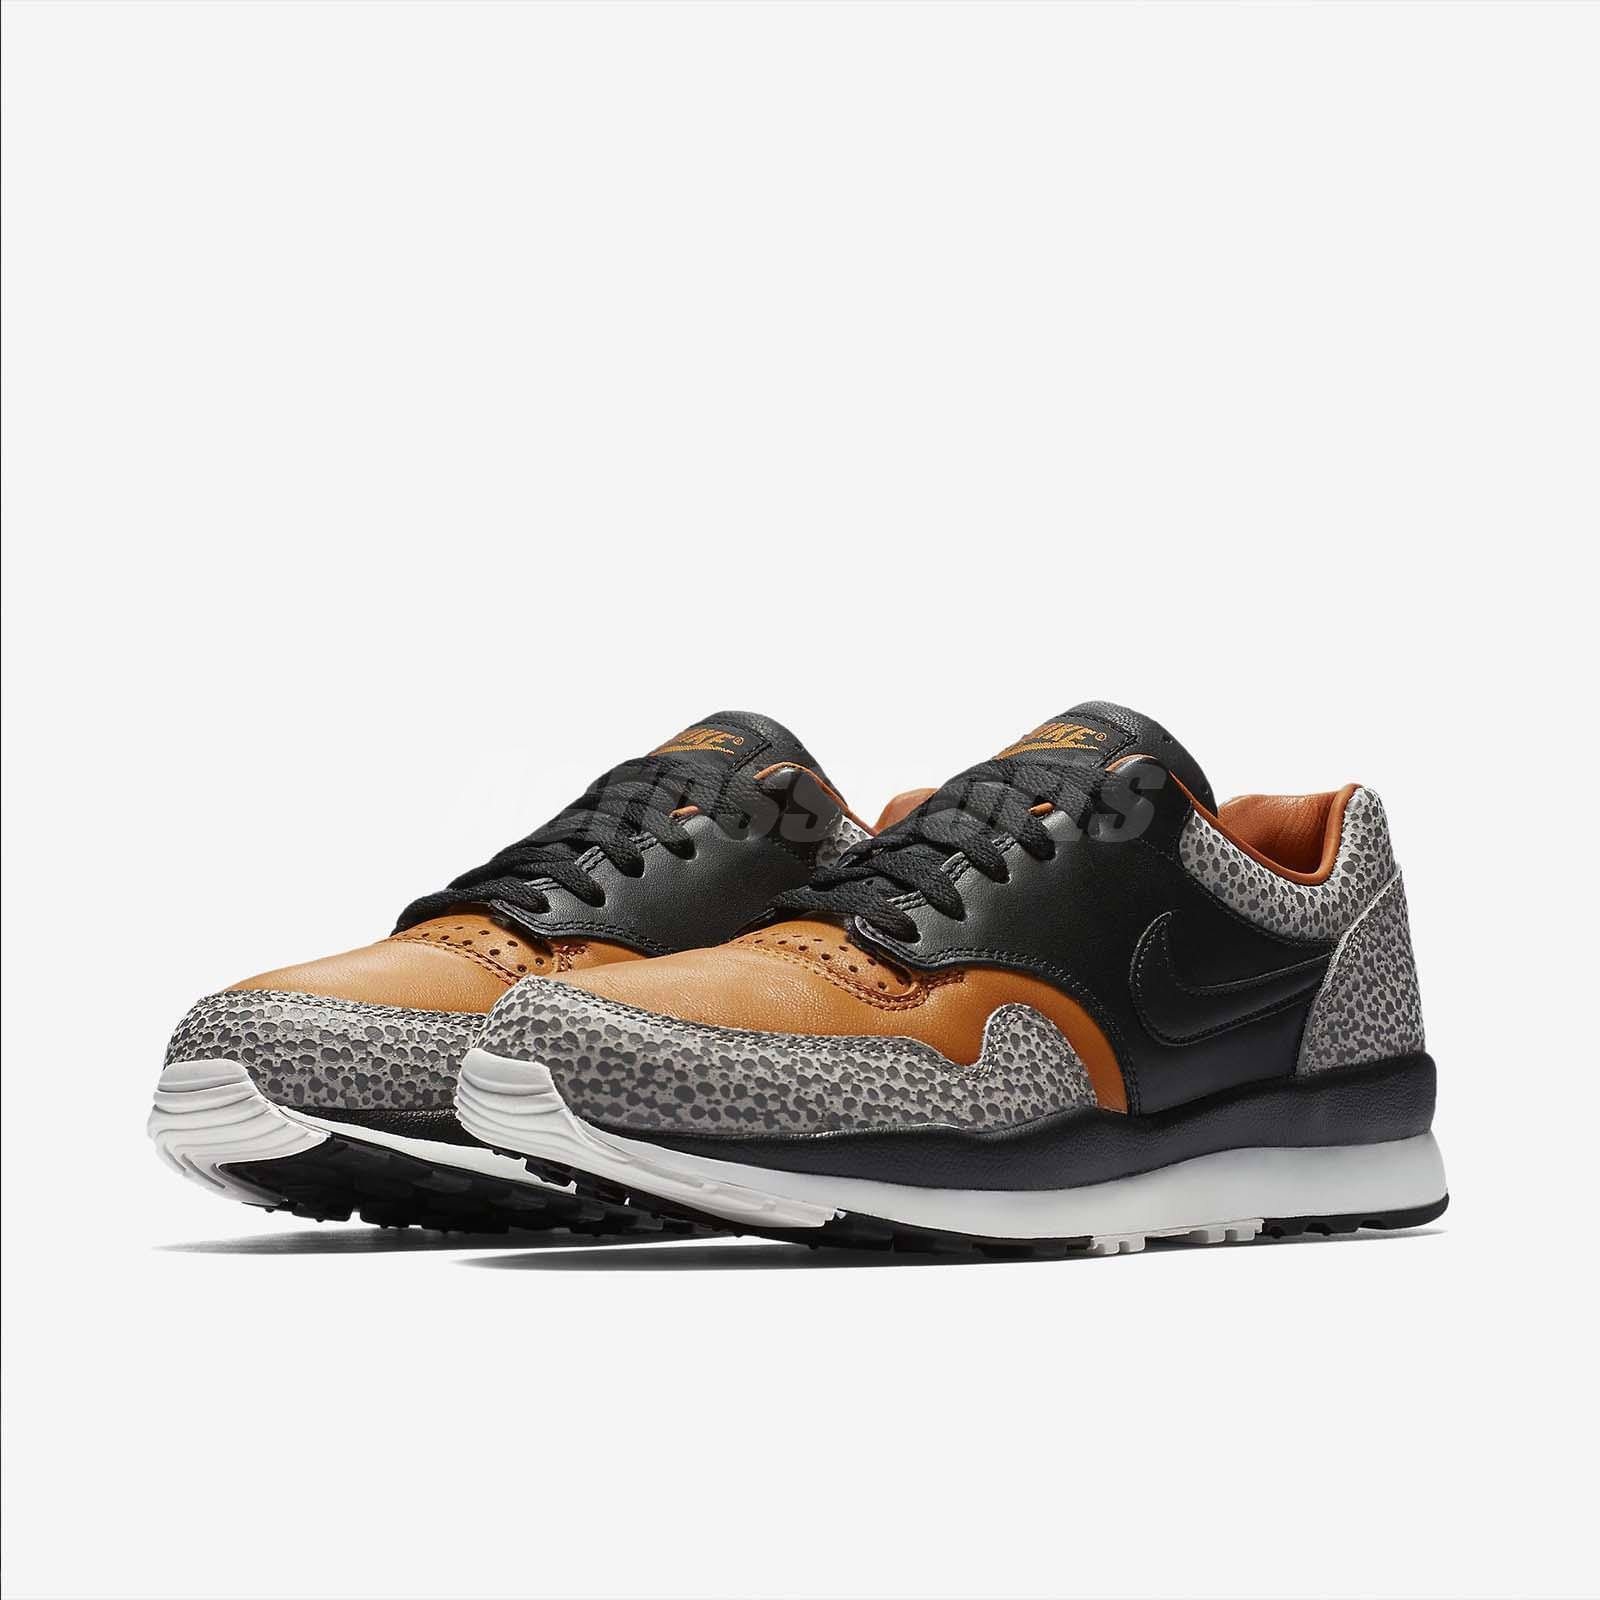 Nike Air Safari QS OG 2018 Retro Jungle Flashback Monrach AO3295-001 Comfortable Great discount New shoes for men and women, limited time discount